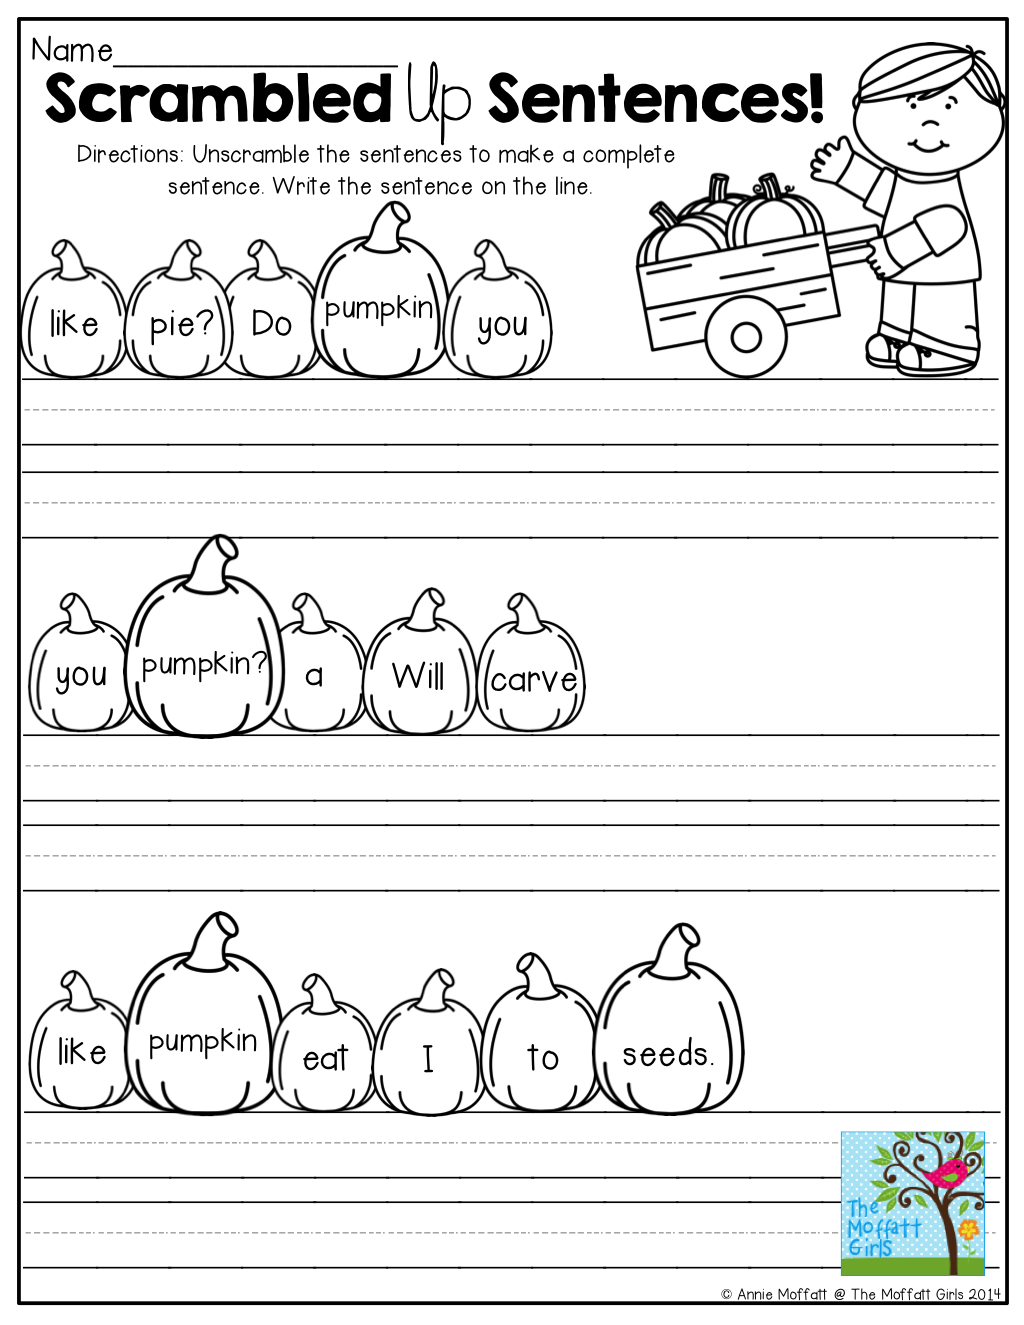 worksheet Sentence Scramble Worksheets For Grade 1 scrambled up sentences unscramble the words to make a sentence and write it on the